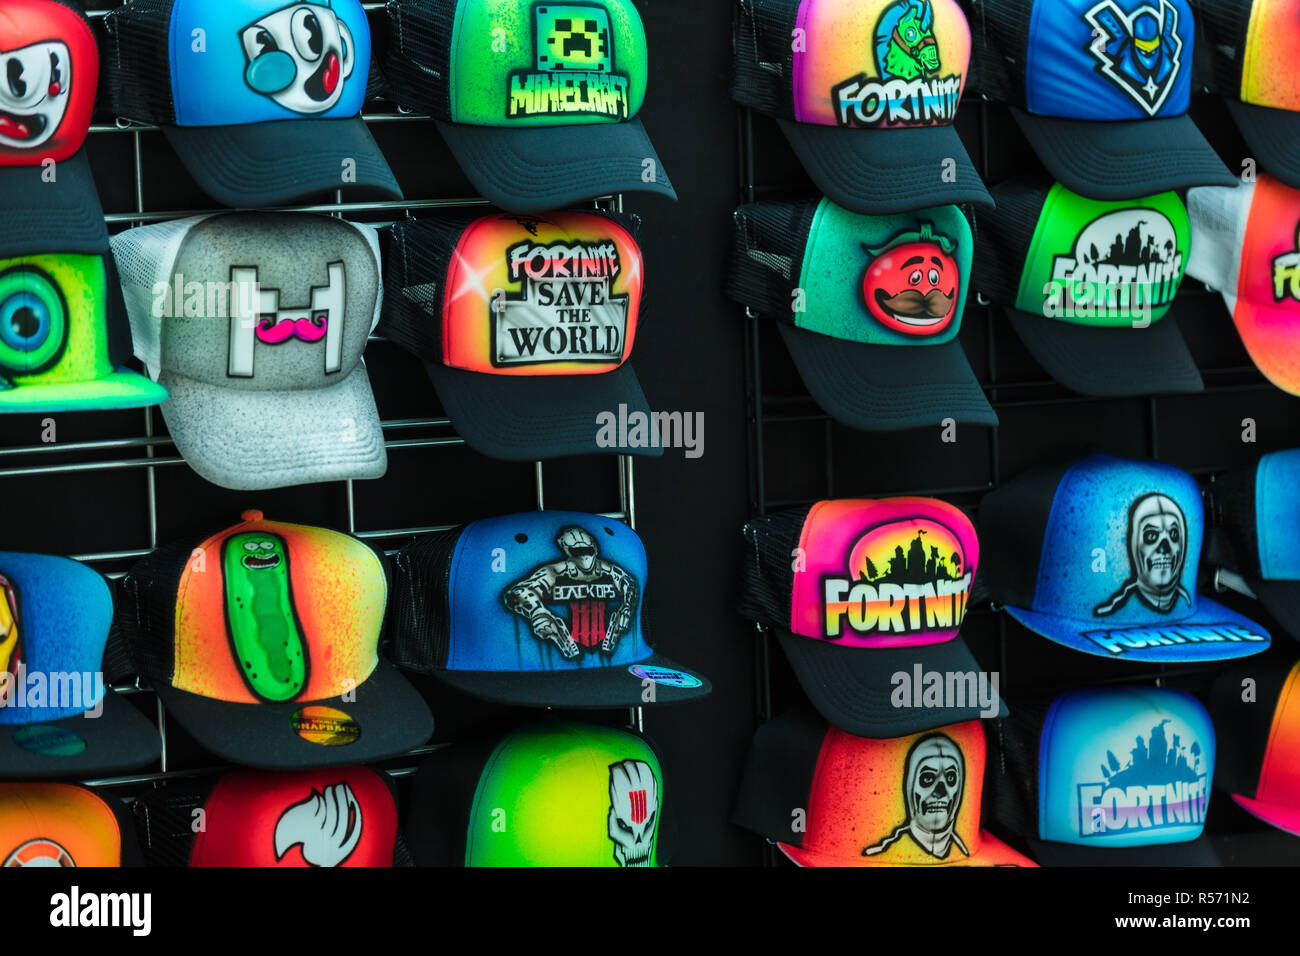 d94ecd12d6d Colourful airbrushed caps with a Fortnite design. Fortnite is a popular  video game. -